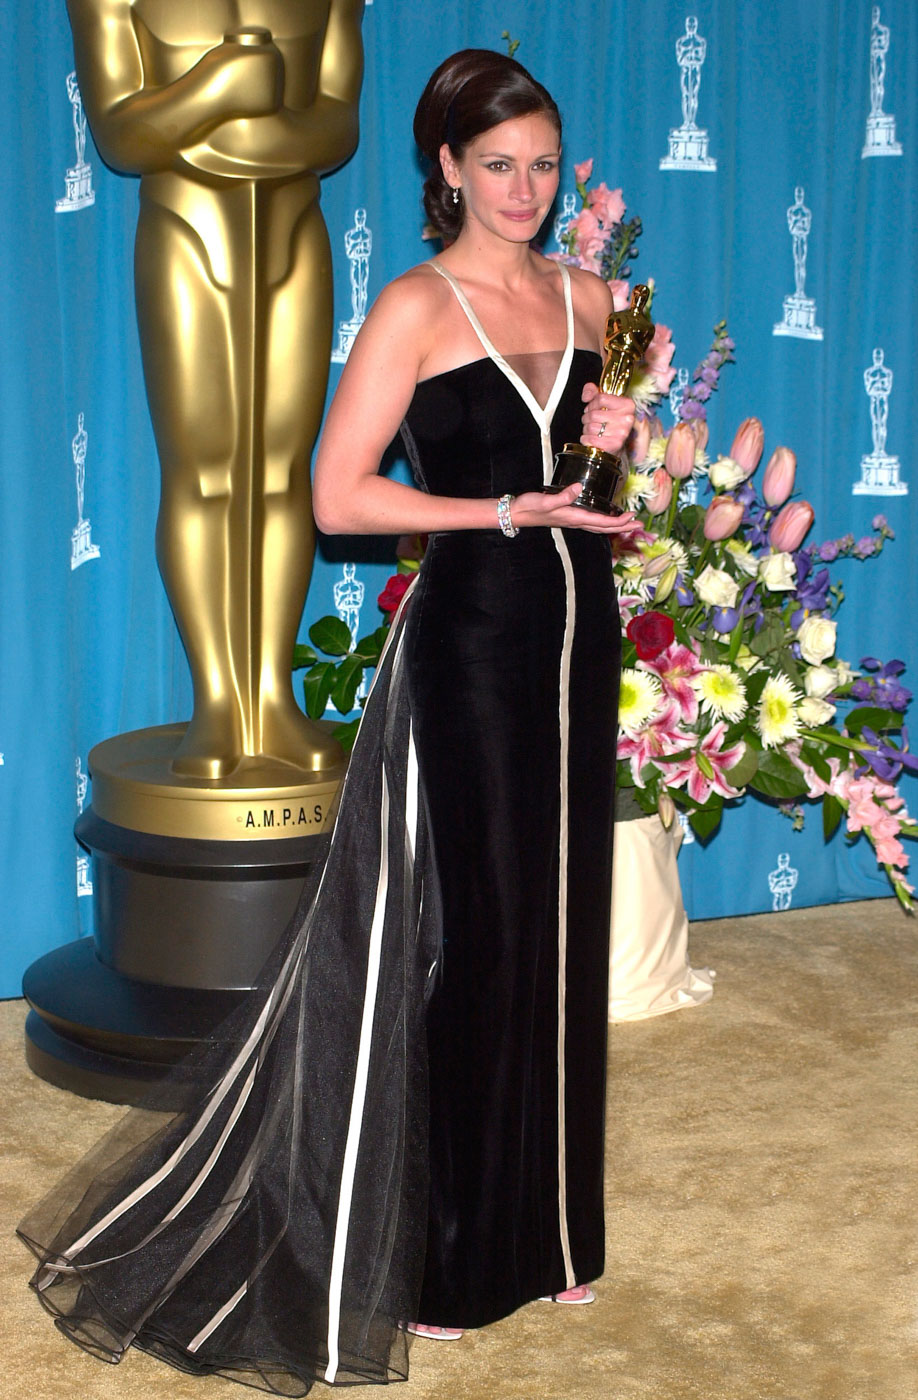 CLASSIC. Julia Roberts holds up her Best Actress award in a Valentino dress.